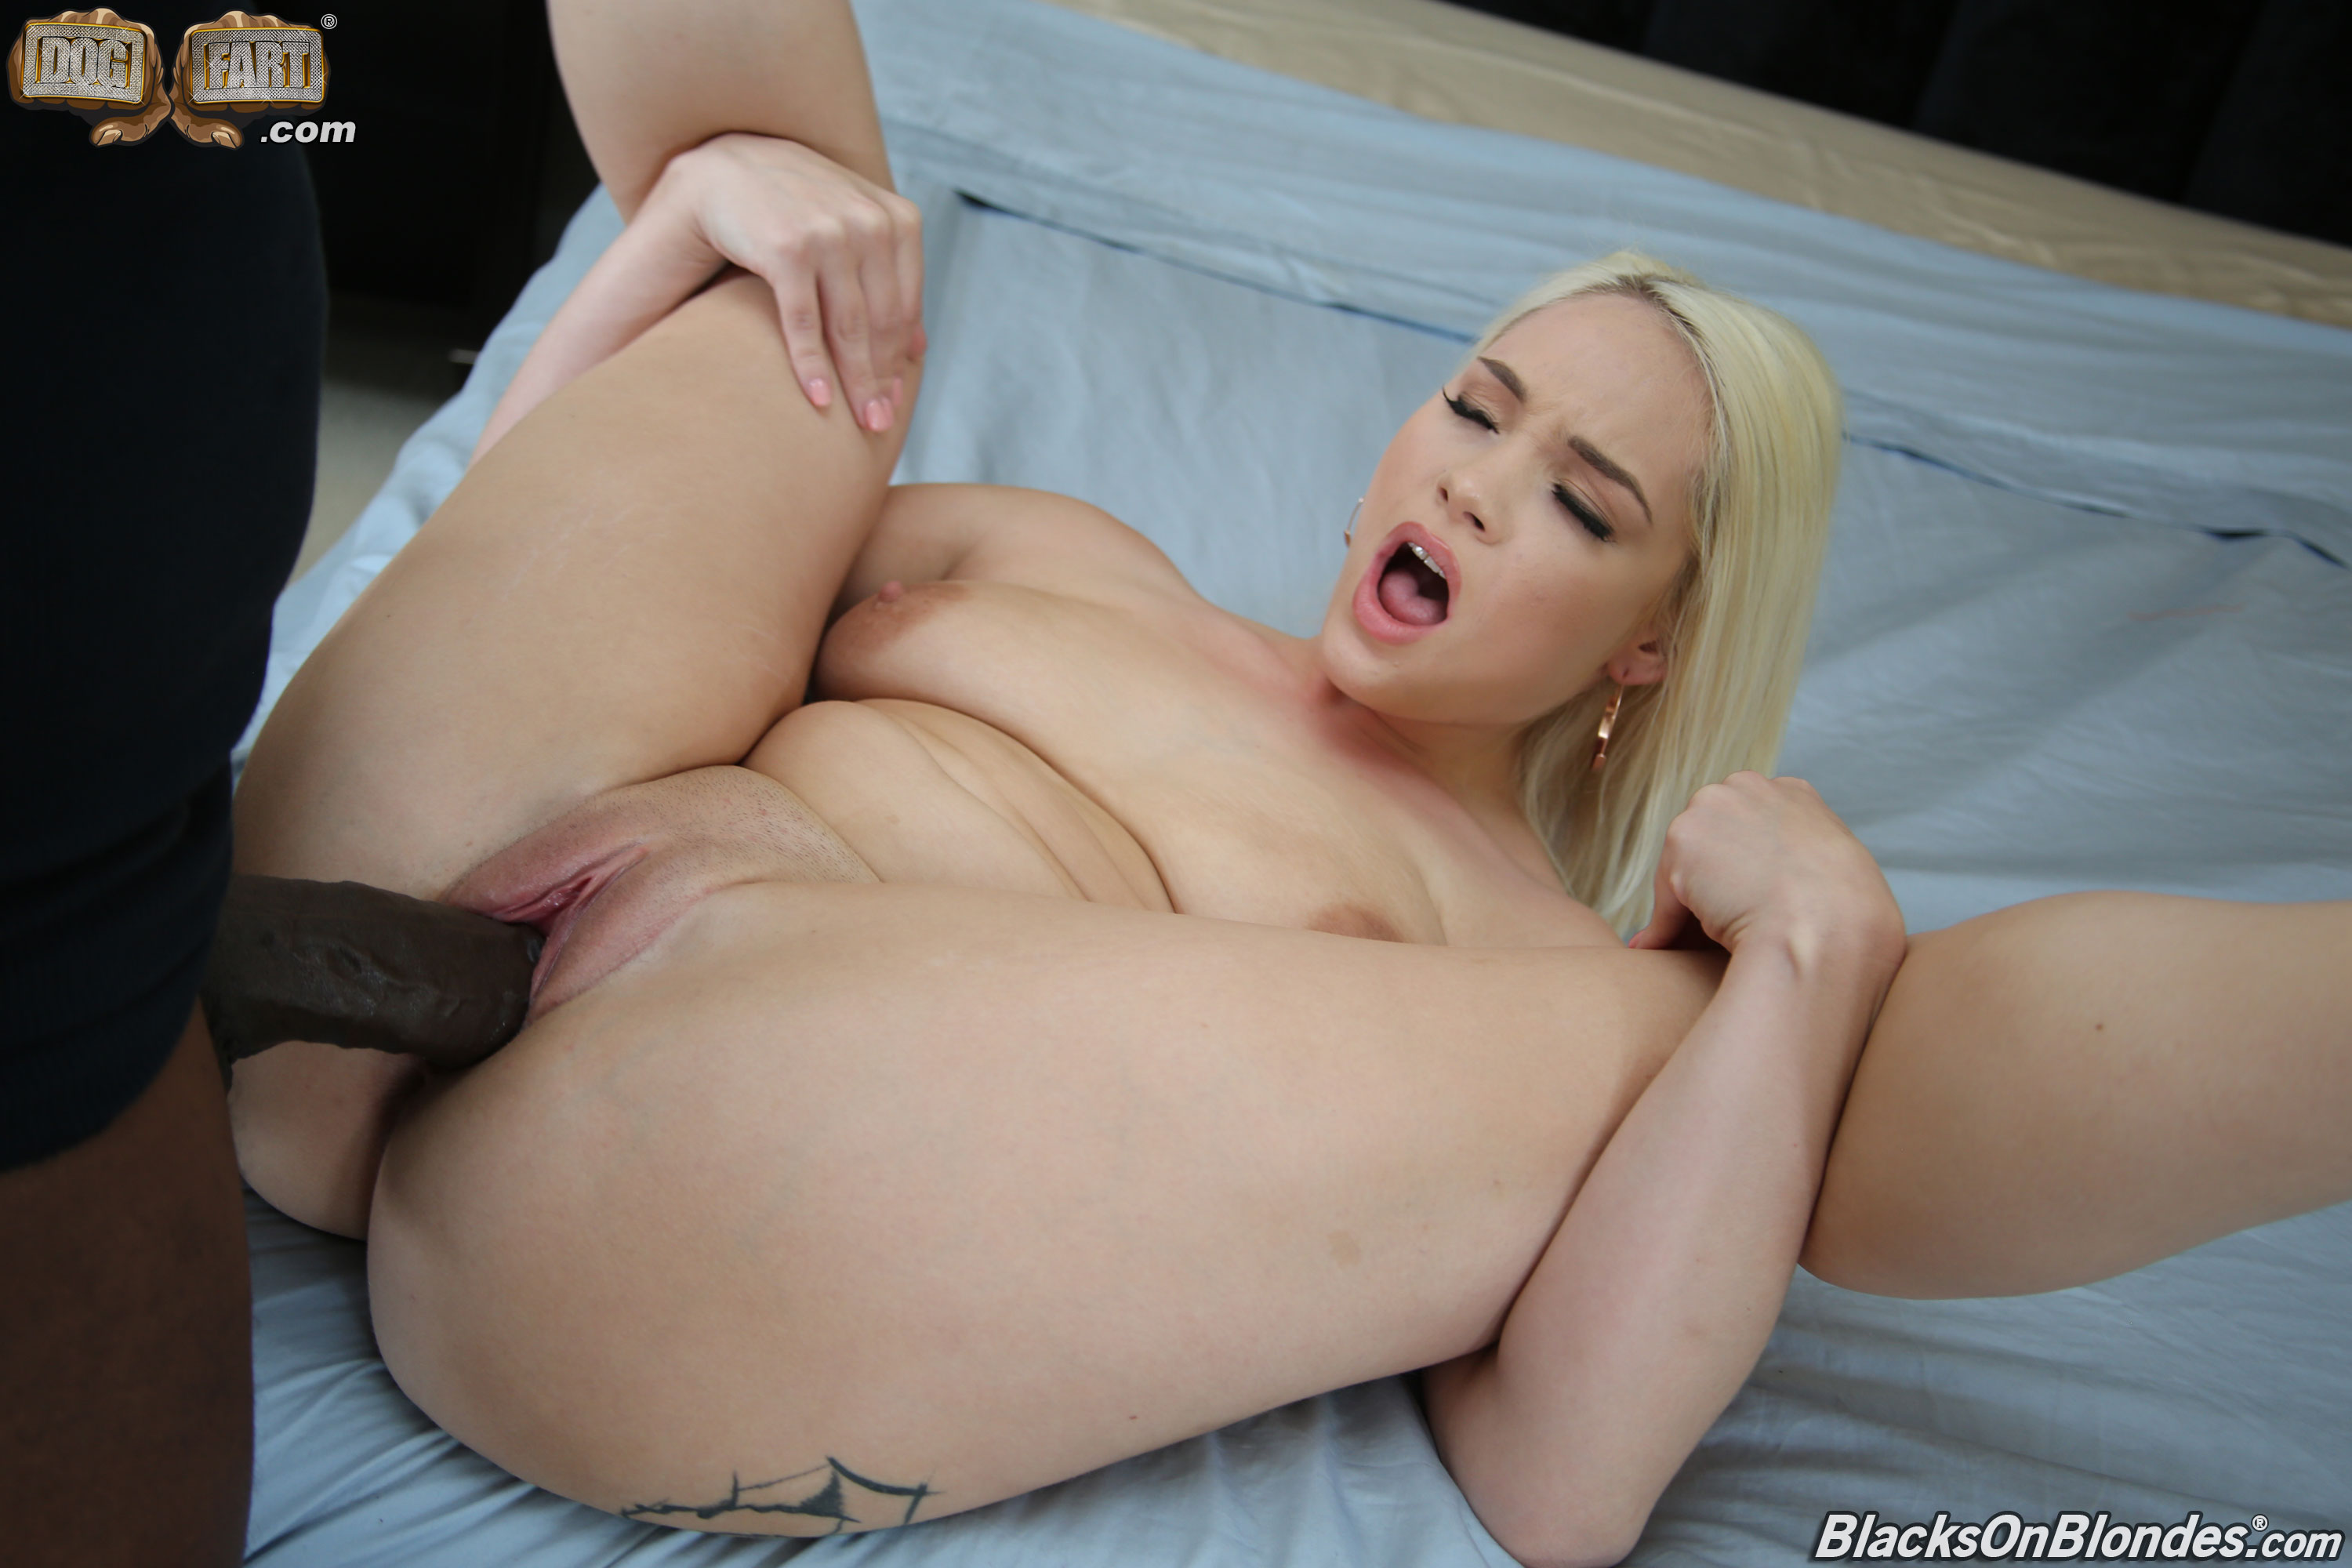 http://galleries.blacksonblondes.com/content/hadley_viscara/pics/pic/25.jpg